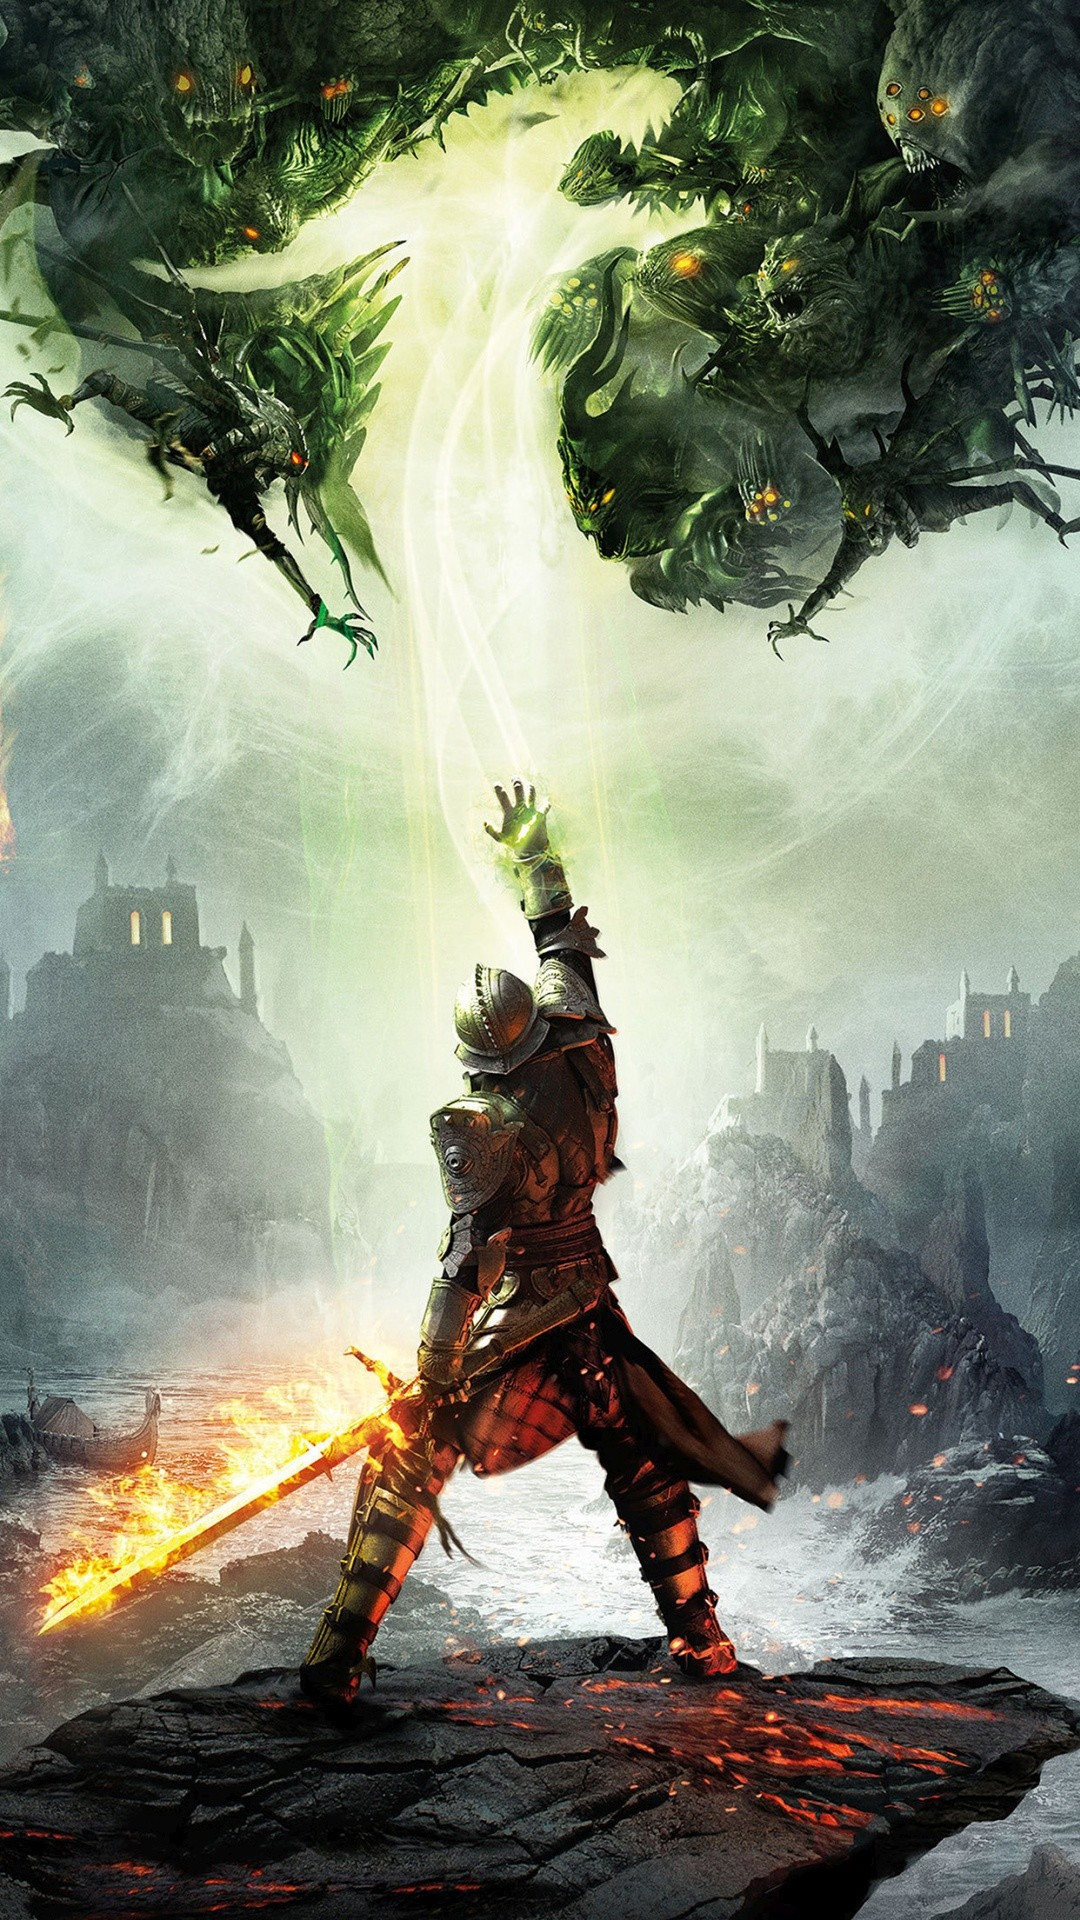 1080x1920 Dragon Age Game iPhone 6+ HD Wallpaper - http://freebestpicture.com